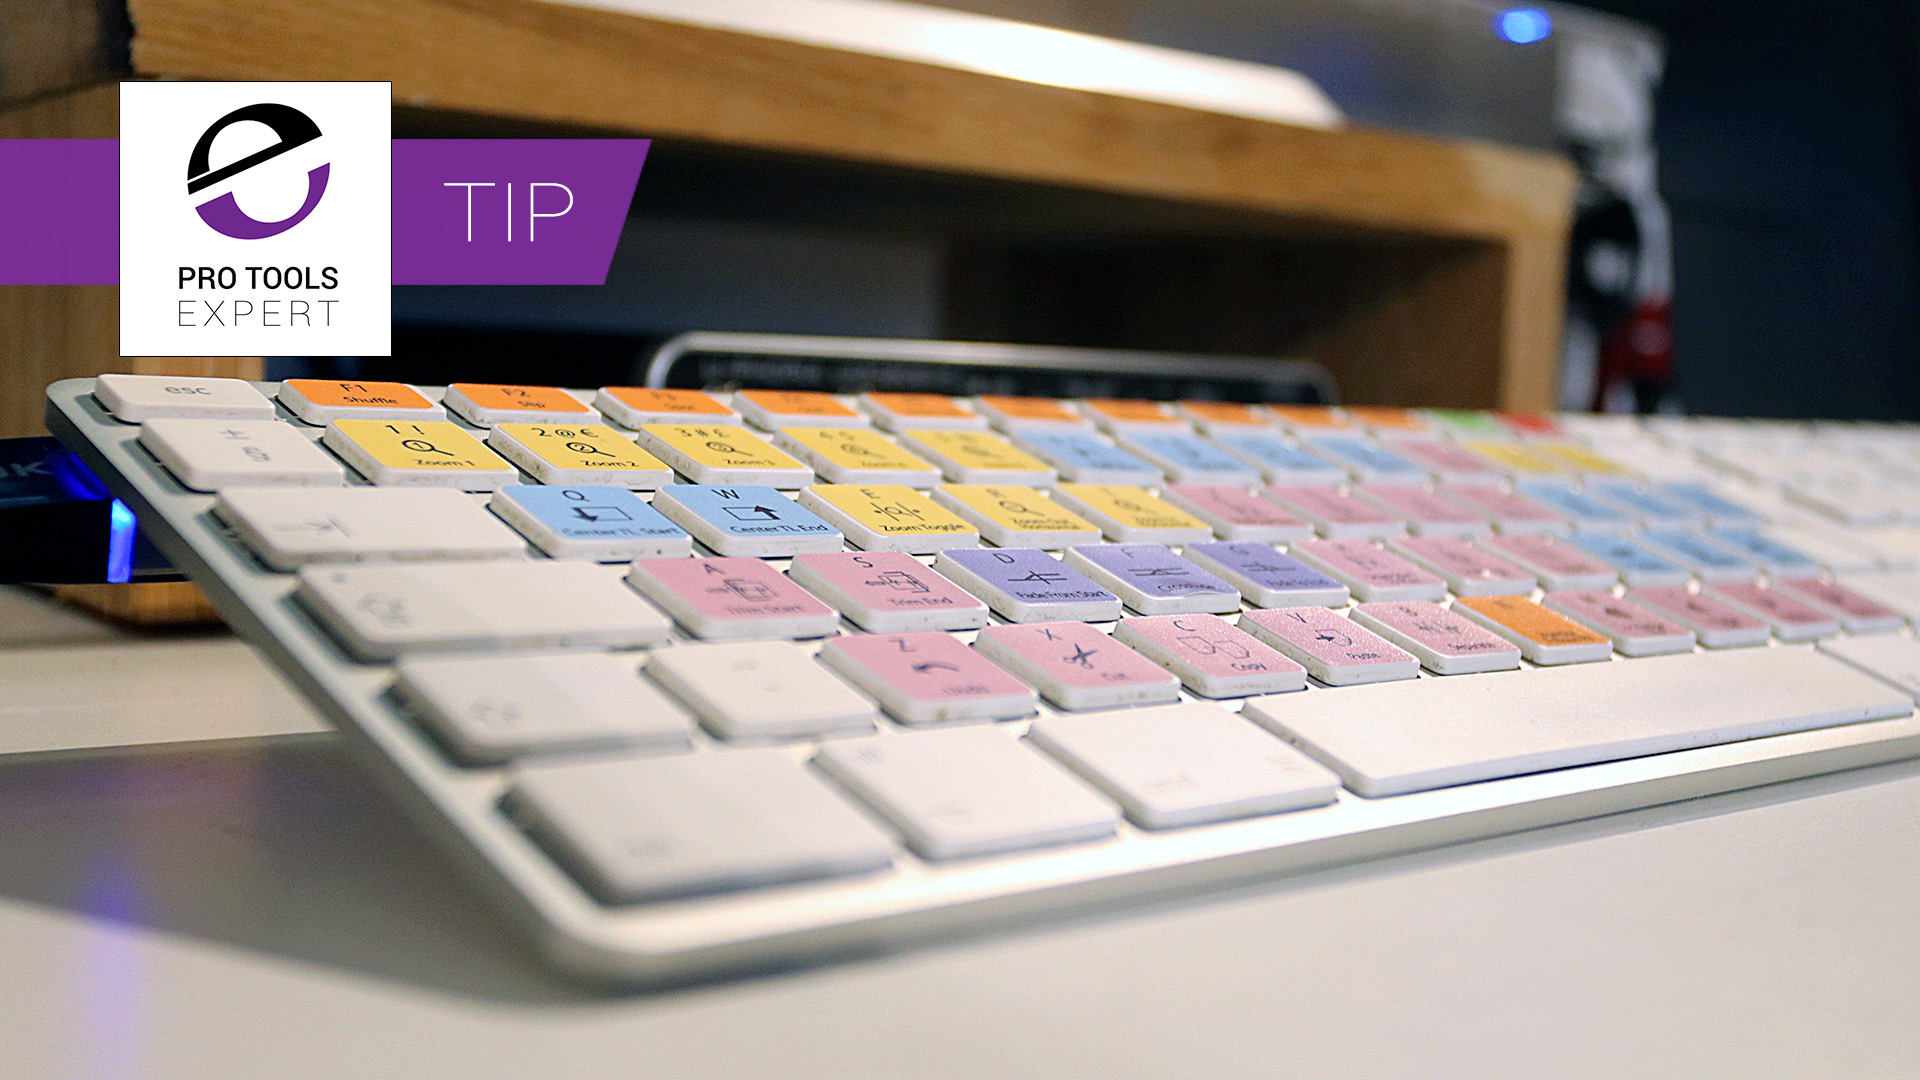 Pro-Tools-DAW-Keyboard-Shortcut-Stickers-pros-and-cons.jpg